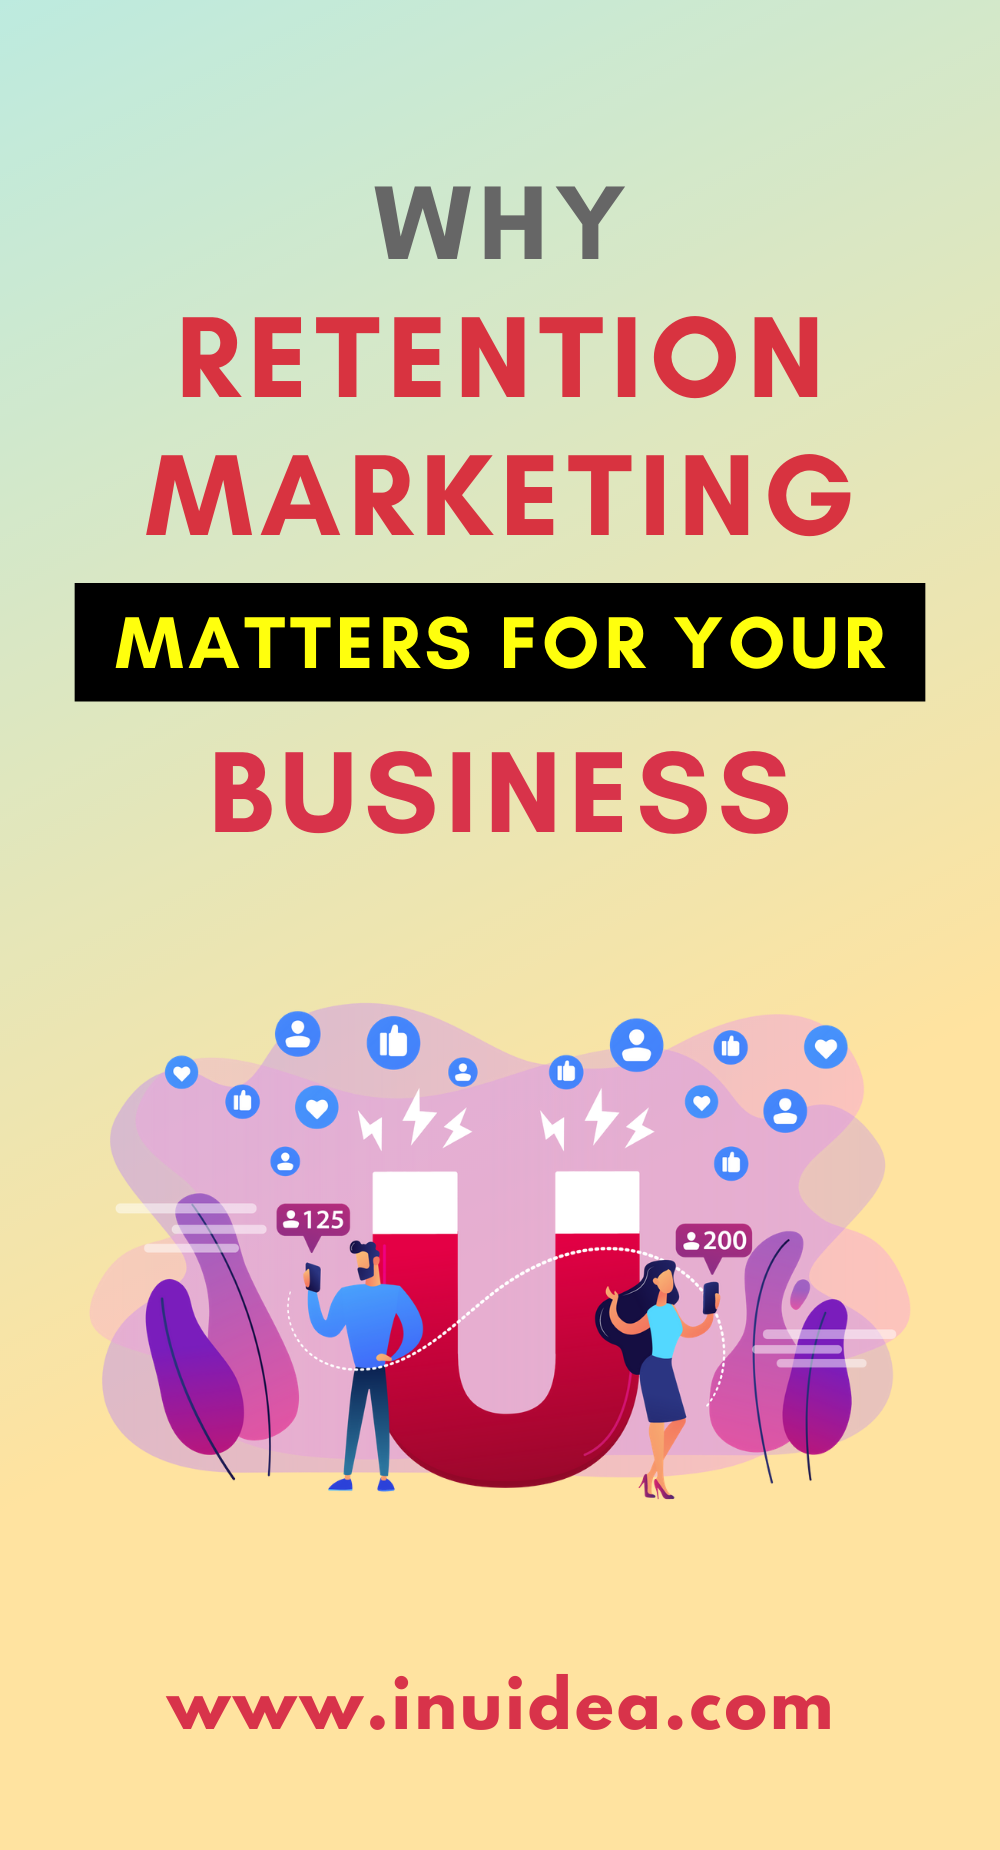 Why Retention Marketing Matters for Your Business